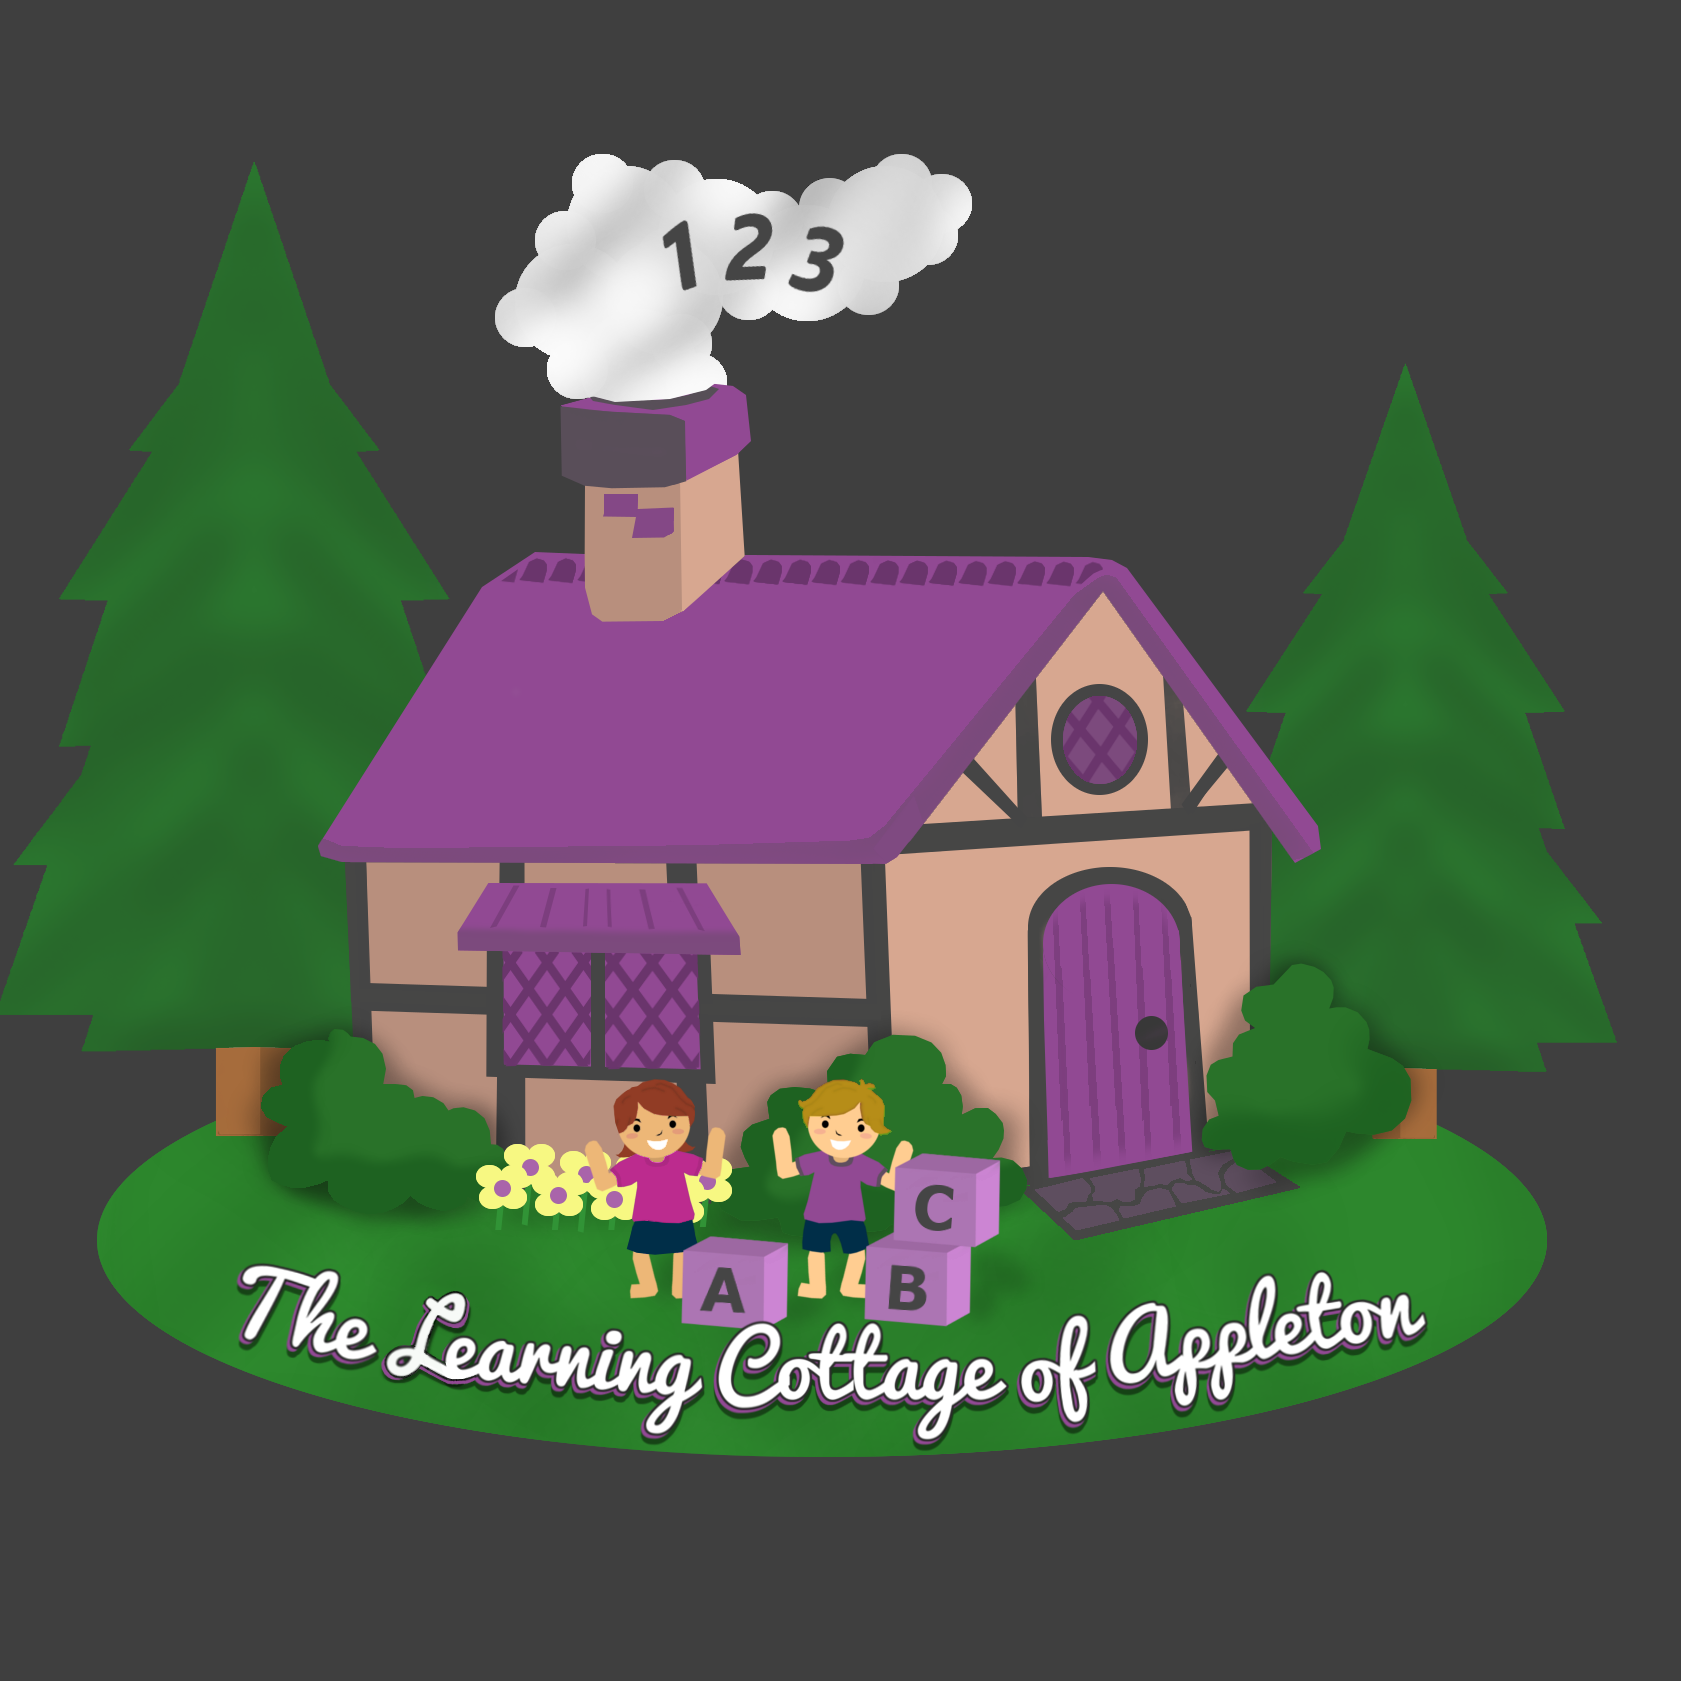 The Learning Cottage Of Appleton